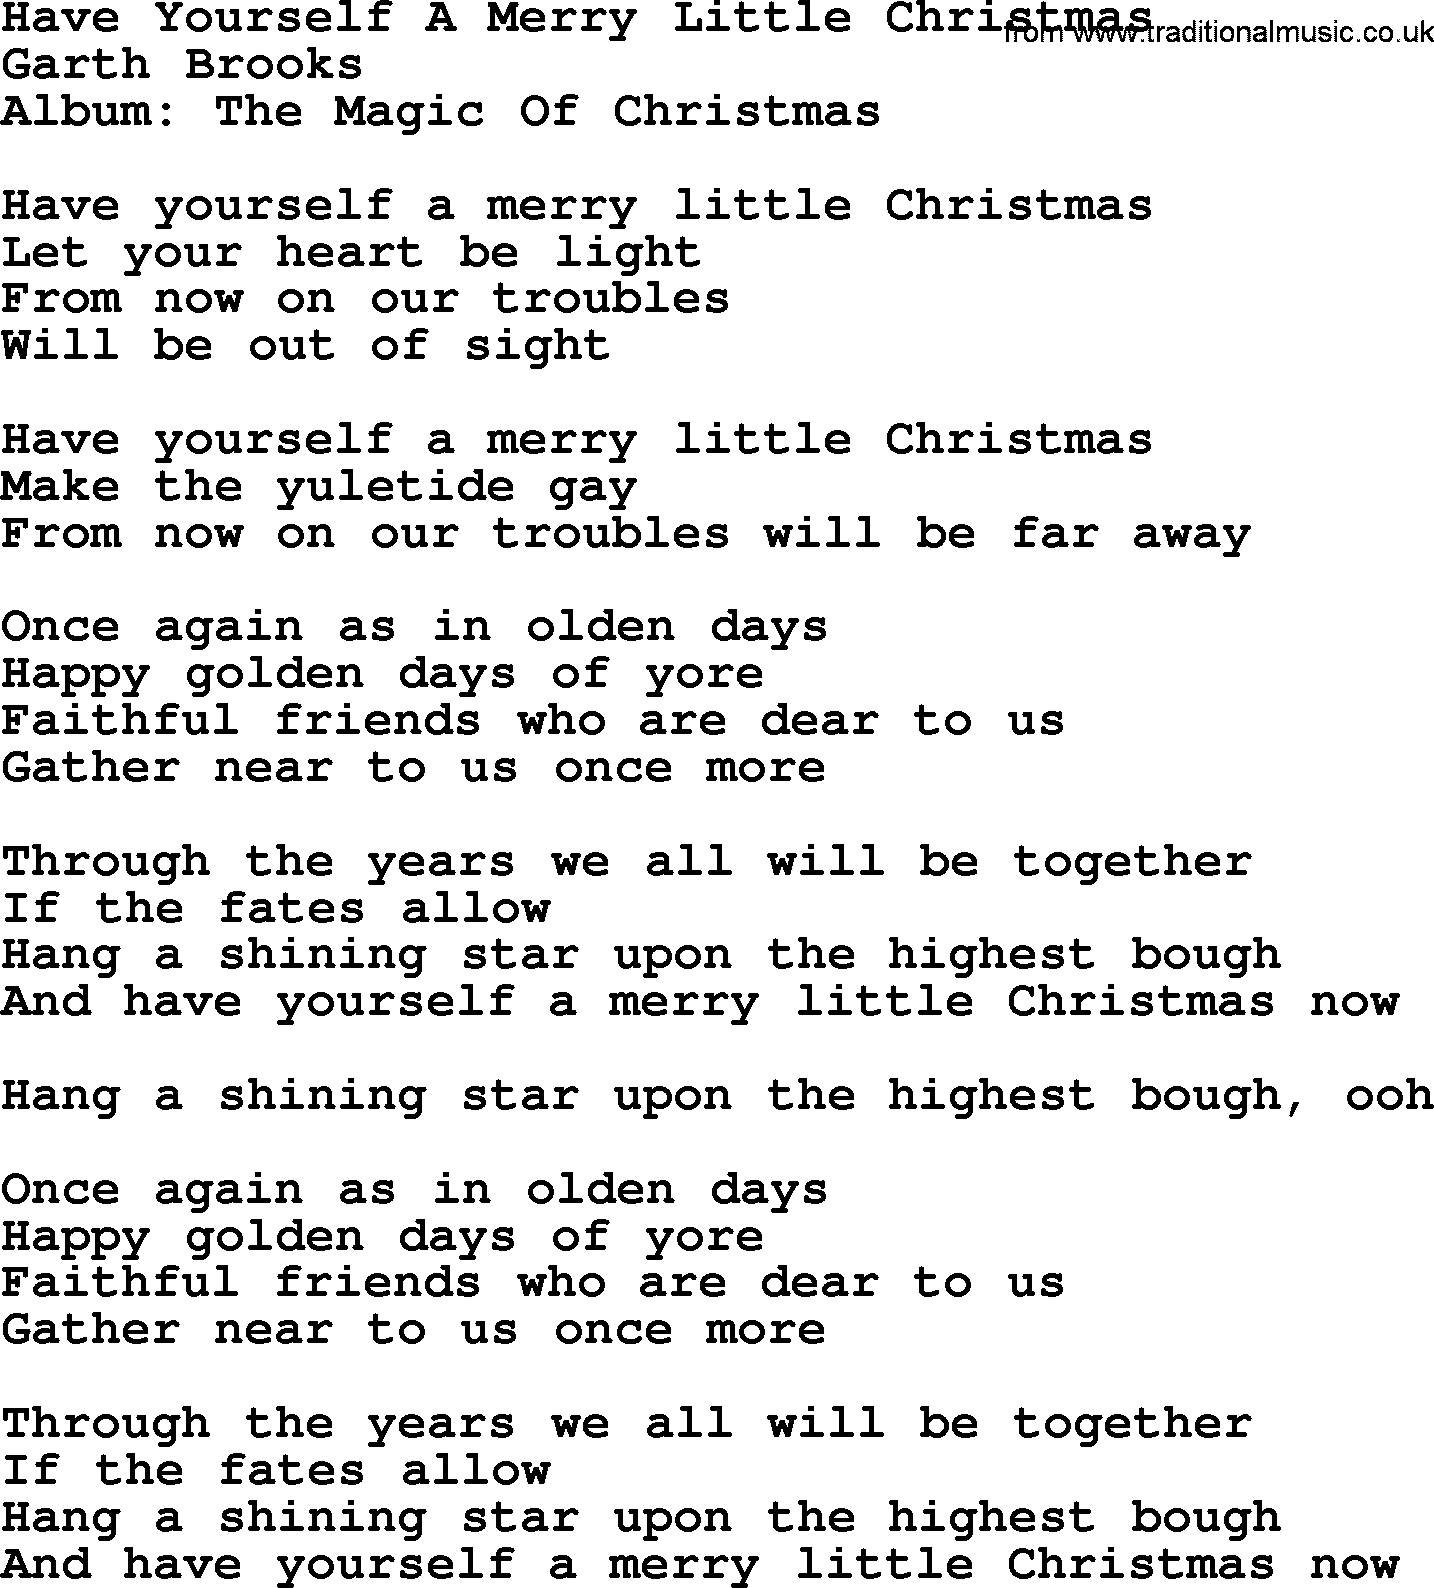 Merry Little Christmas Lyrics.Have Yourself A Merry Little Christmas By Garth Brooks Lyrics